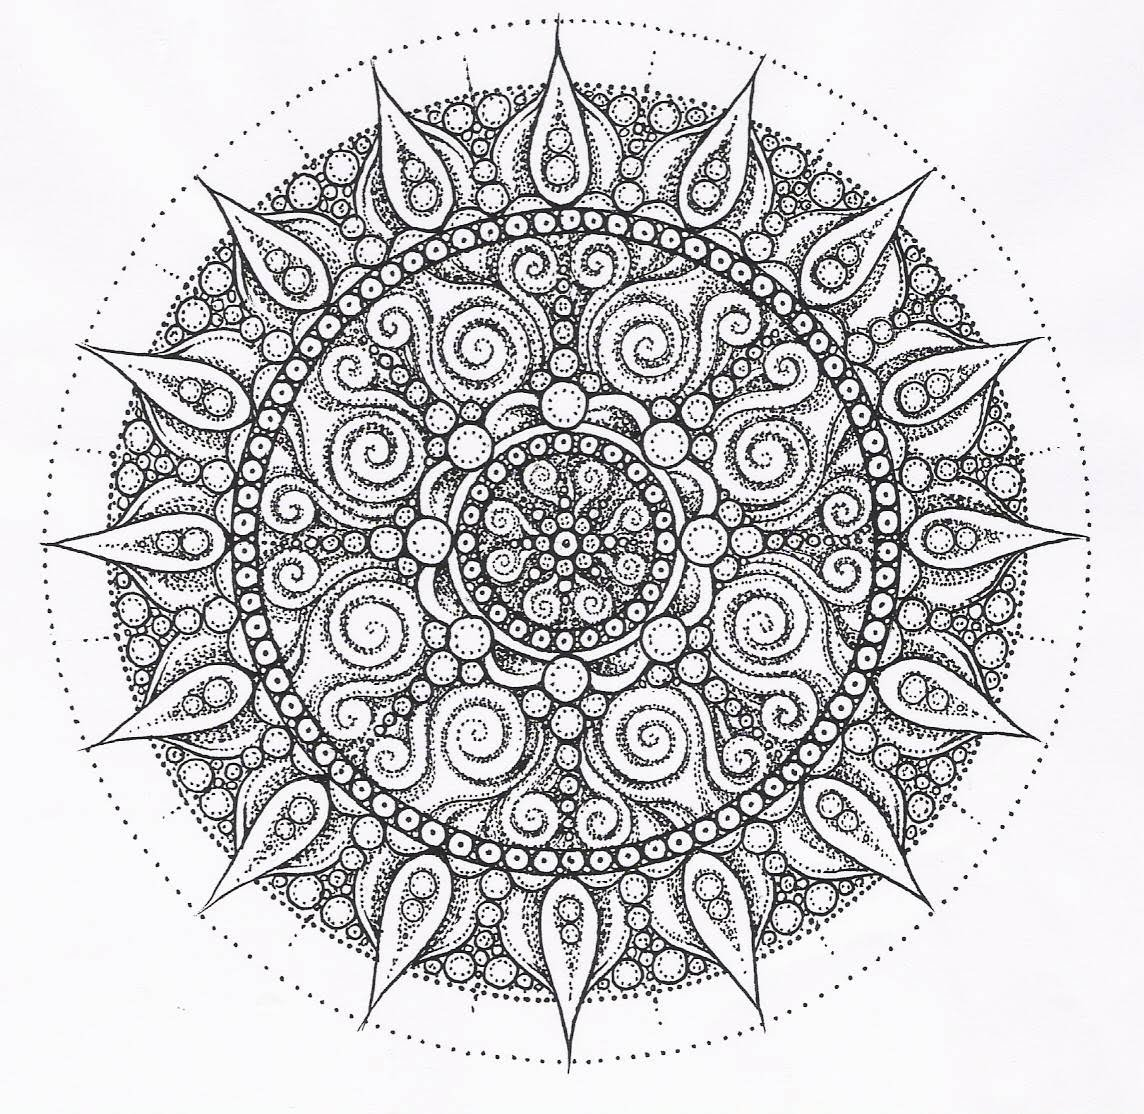 free coloring book pages for adults - Free printable mandala coloring pages